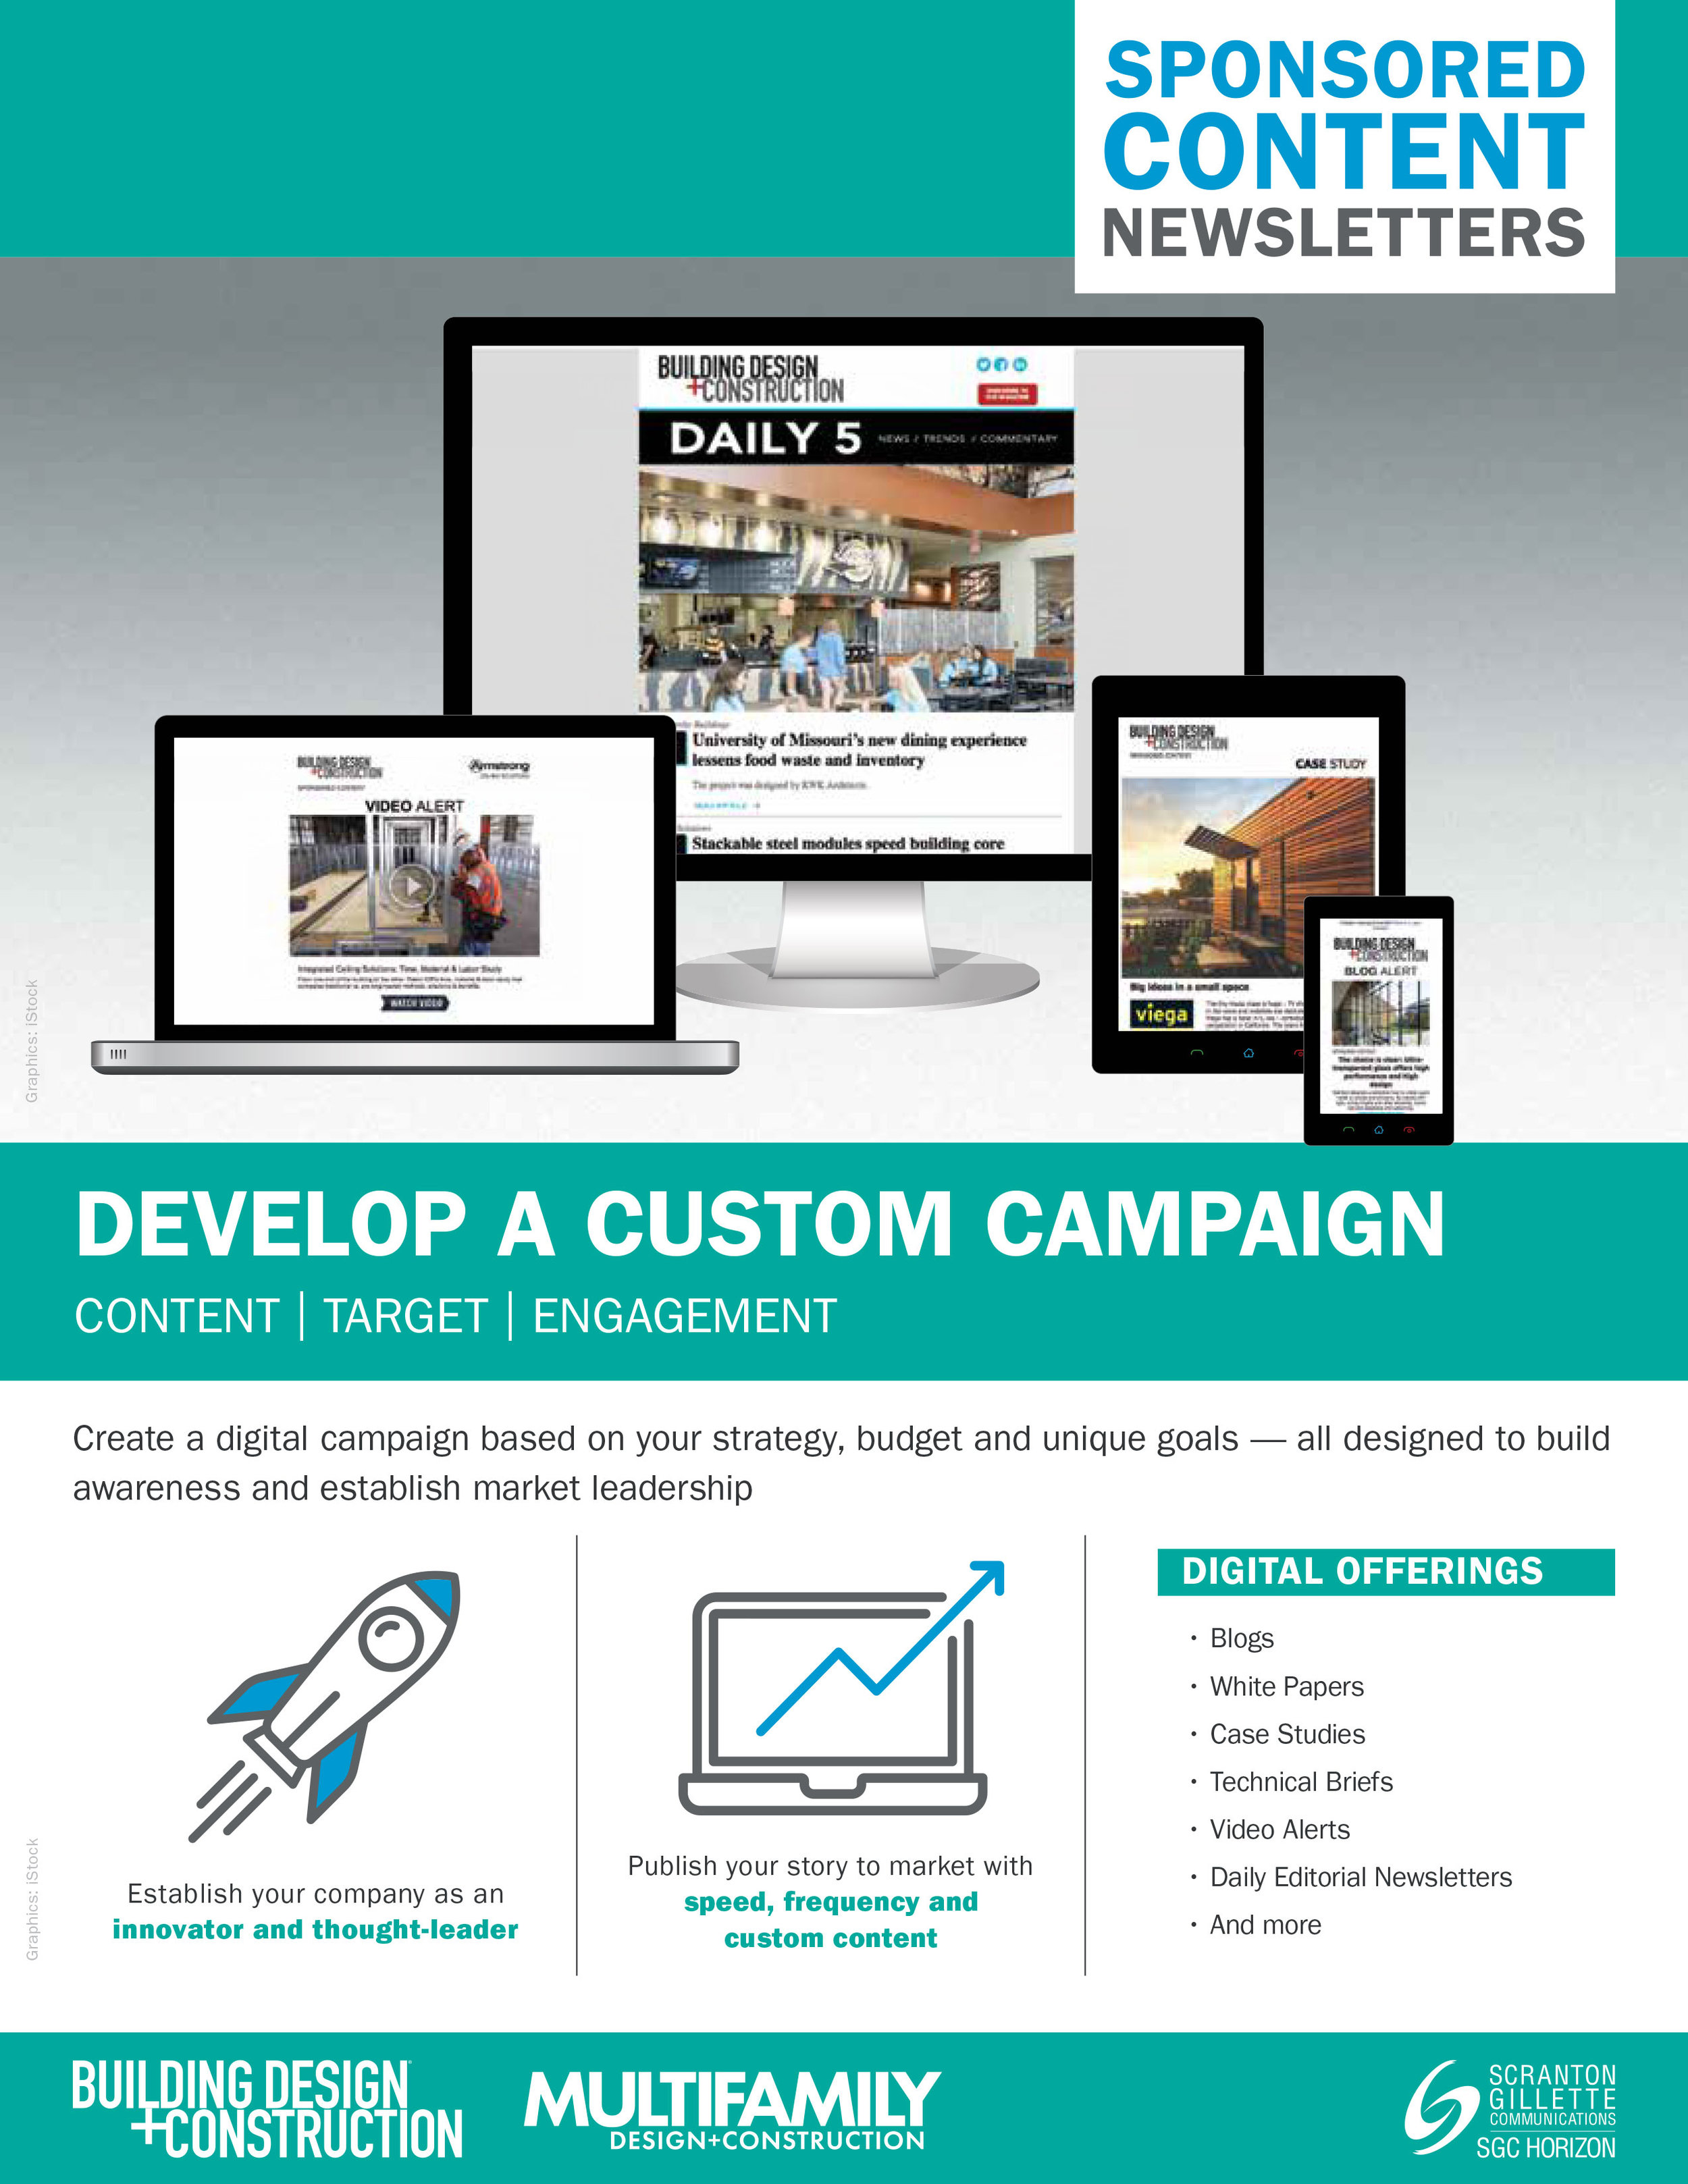 BDC-Sponsored-Content-Newsletters-Flyer_LR.jpg